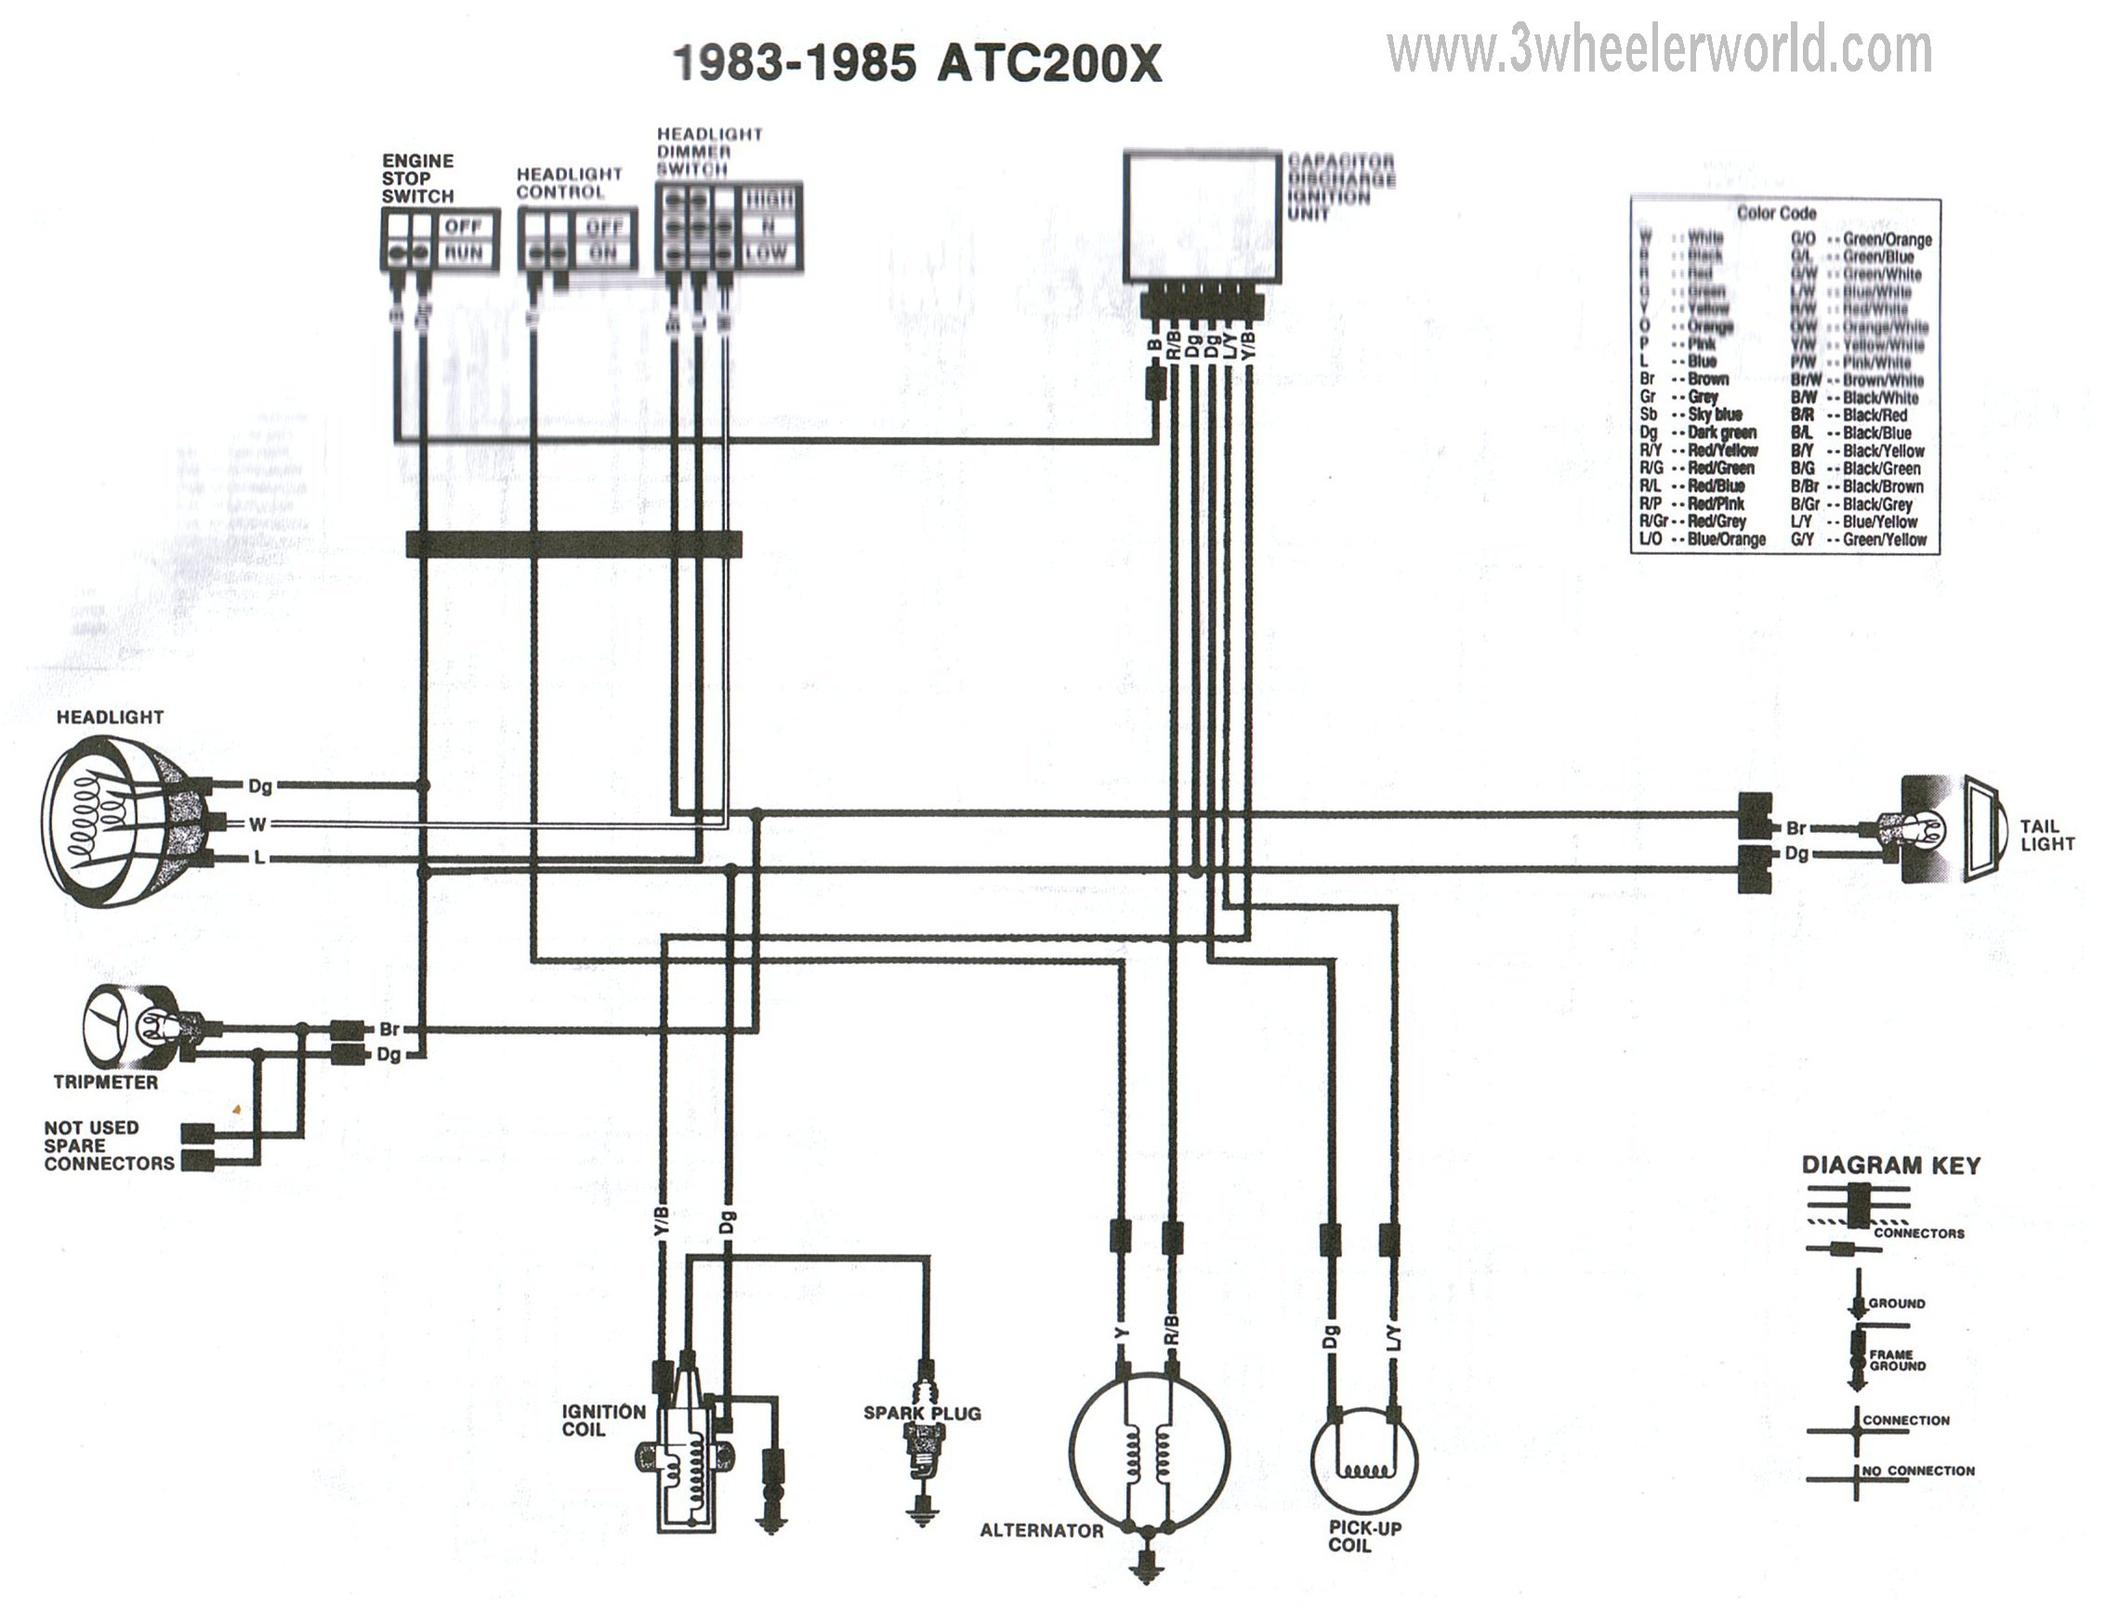 3WHeeLeR WoRLD - Honda ATC wiring diagrams3WHeeLeR WoRLD